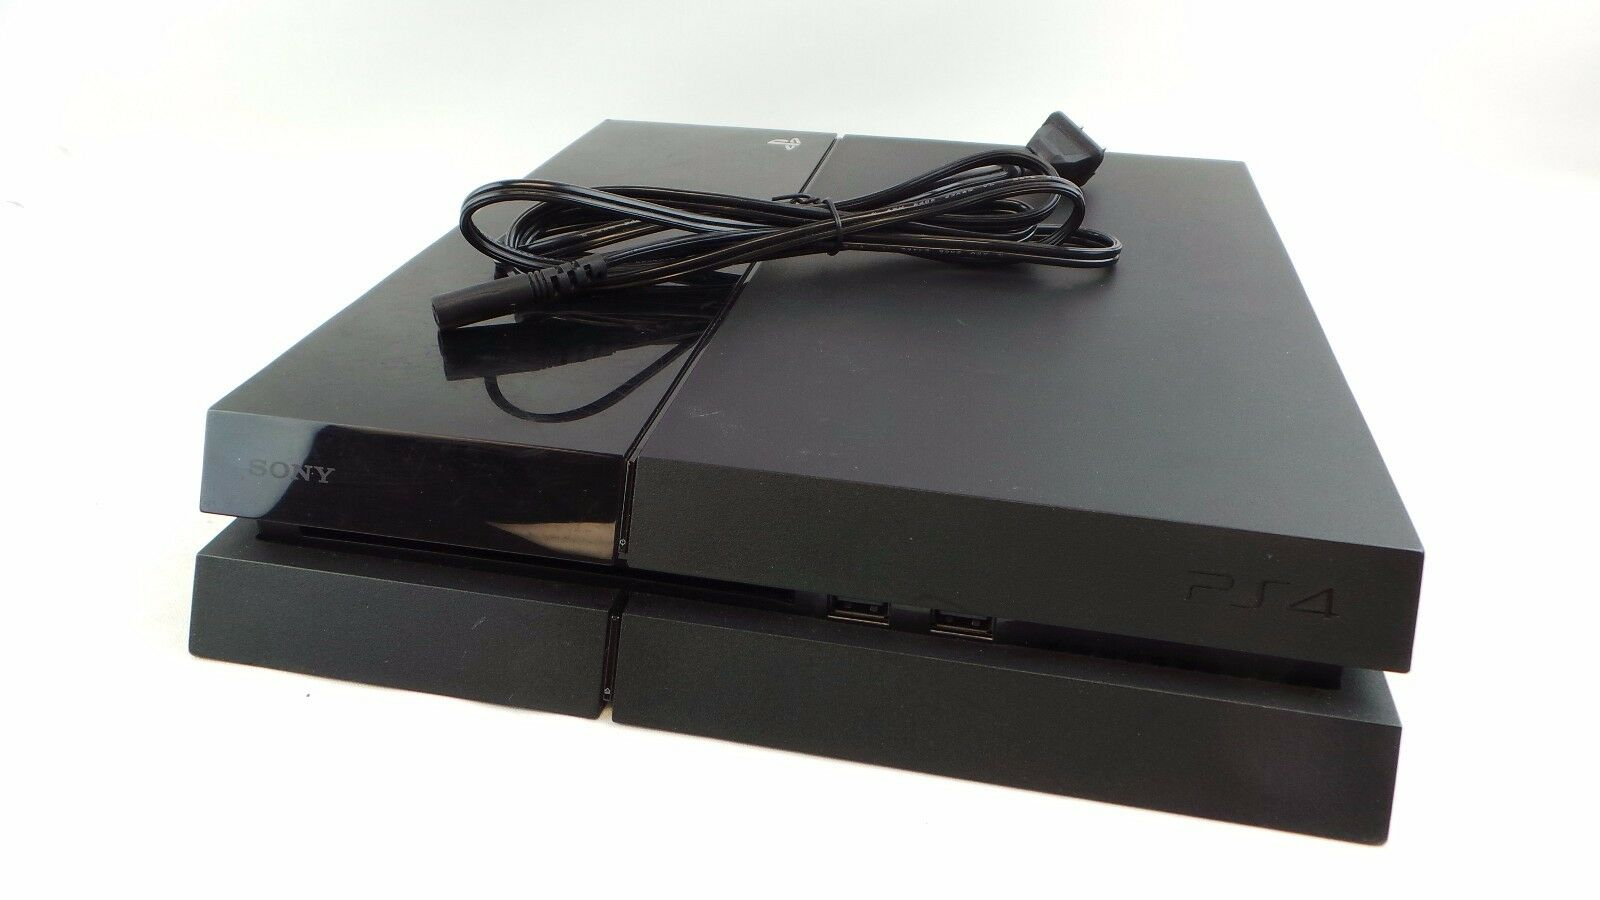 Sony Playstation 4 Ps4 Playstation4 500gb Ps Jet Black Gaming Console Pl03s 1 Of 8free Shipping